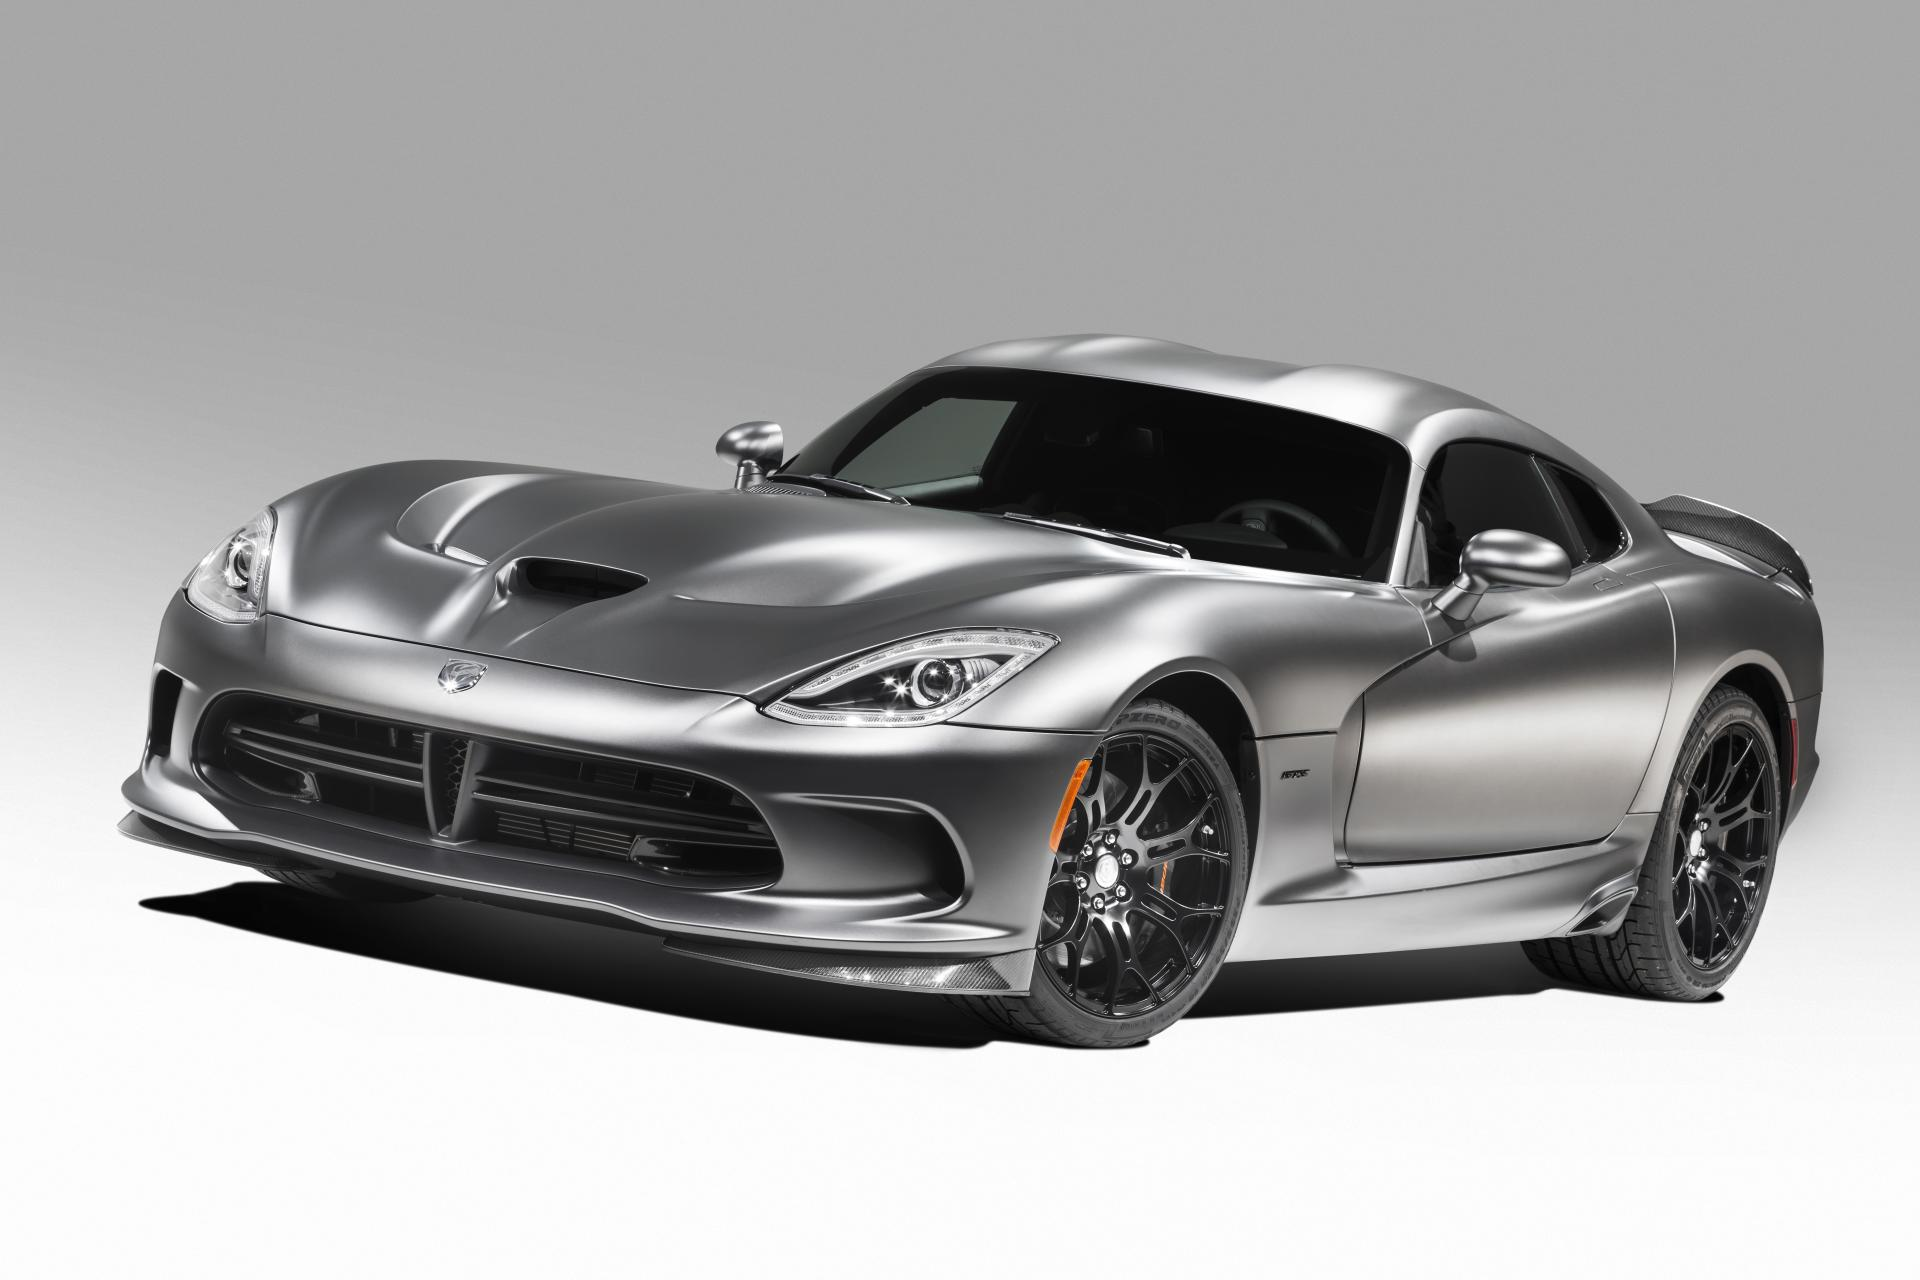 2014 Dodge Viper Srt Anodized Carbon Special Edition Gts